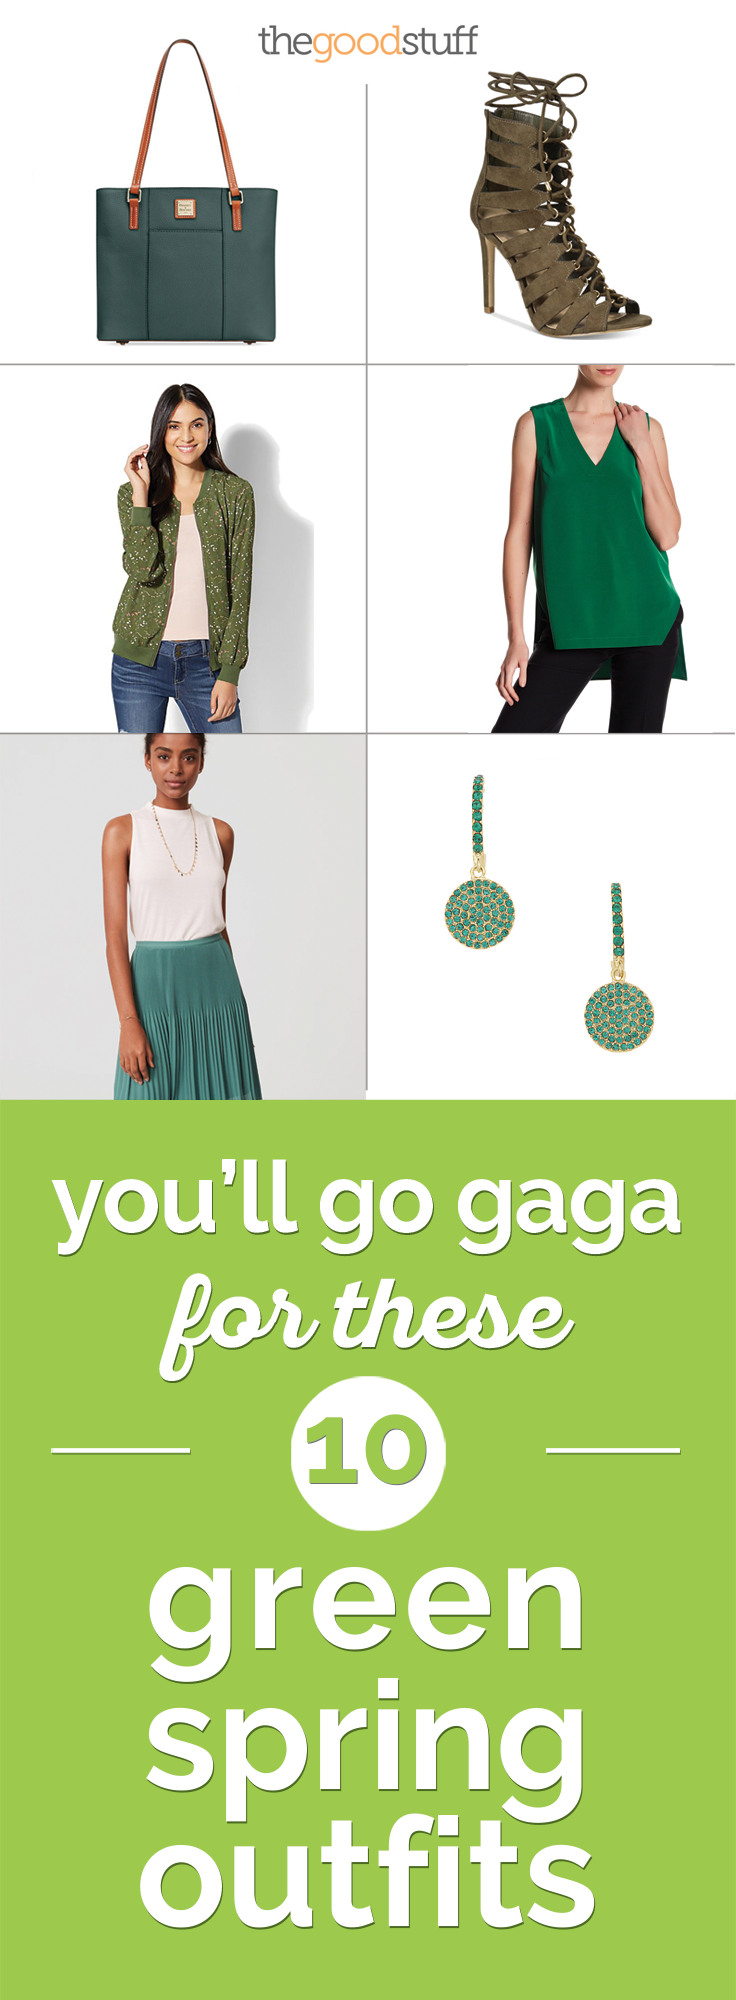 Green Spring Outfits | thegoodstuff